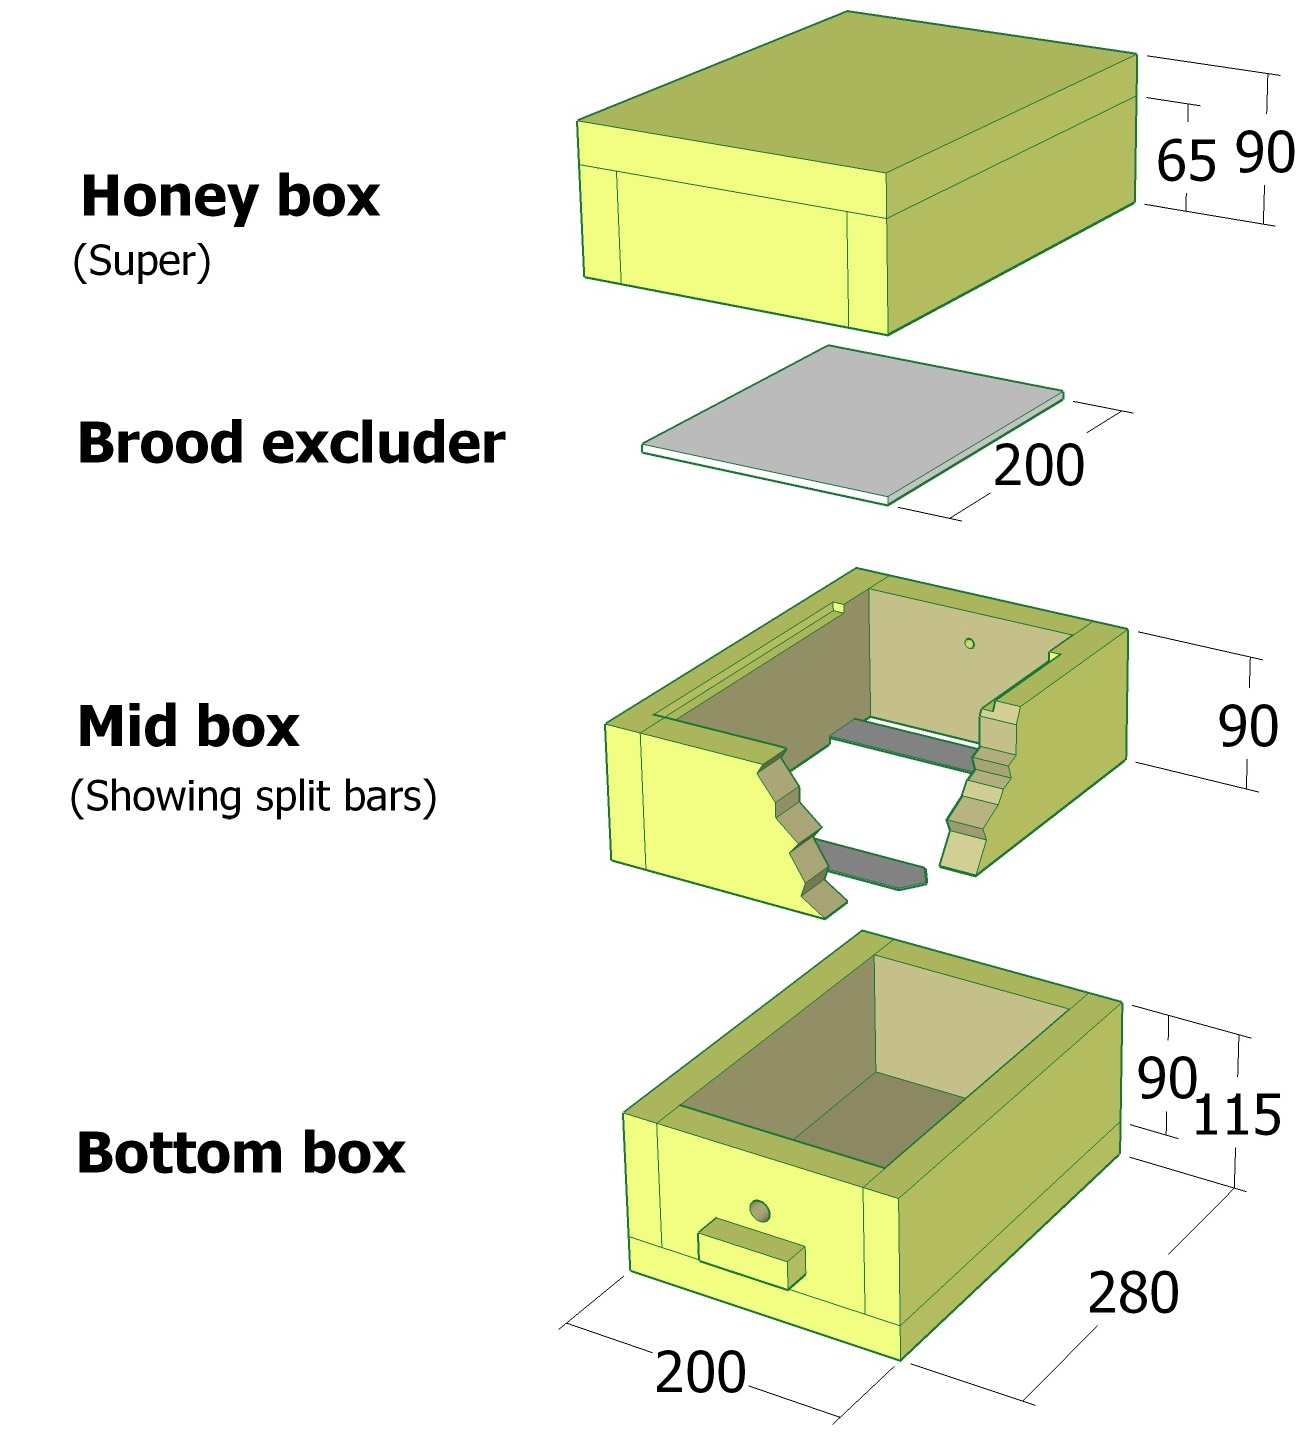 Details Of A Three Section Honey Oath Hive Showing The Top Honey Section And The Brood Excluder